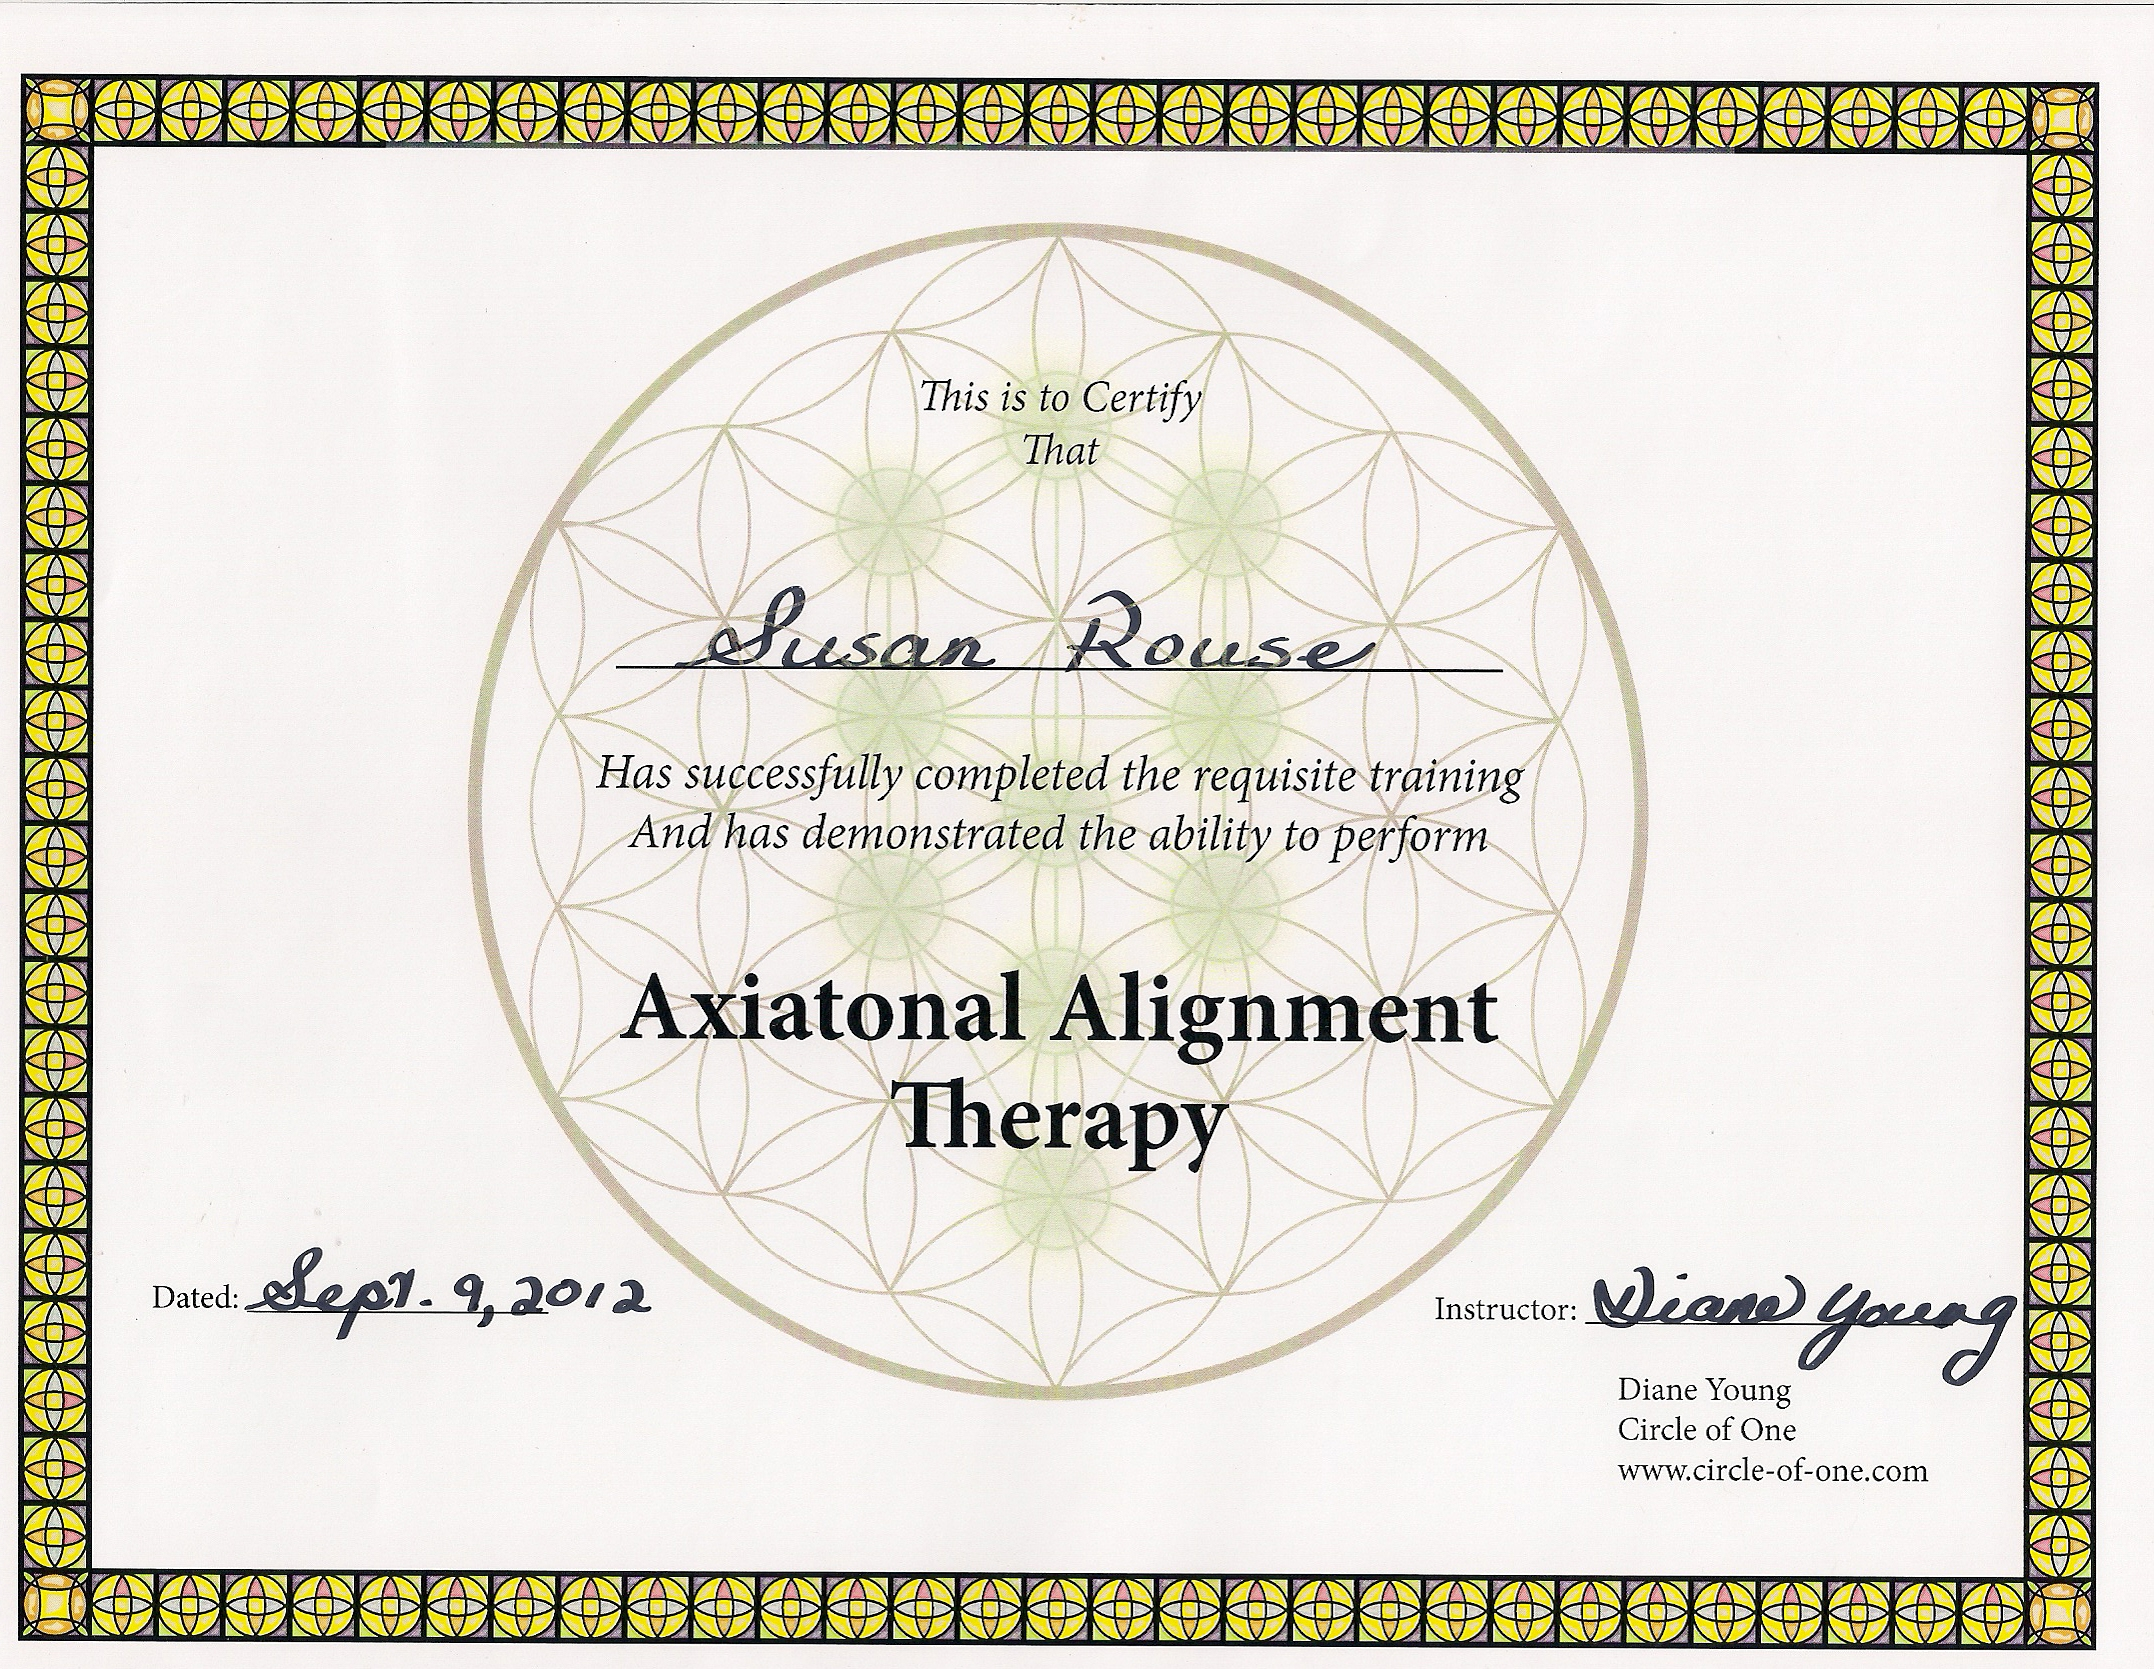 Axiatonal Alignment Therapy Certificate